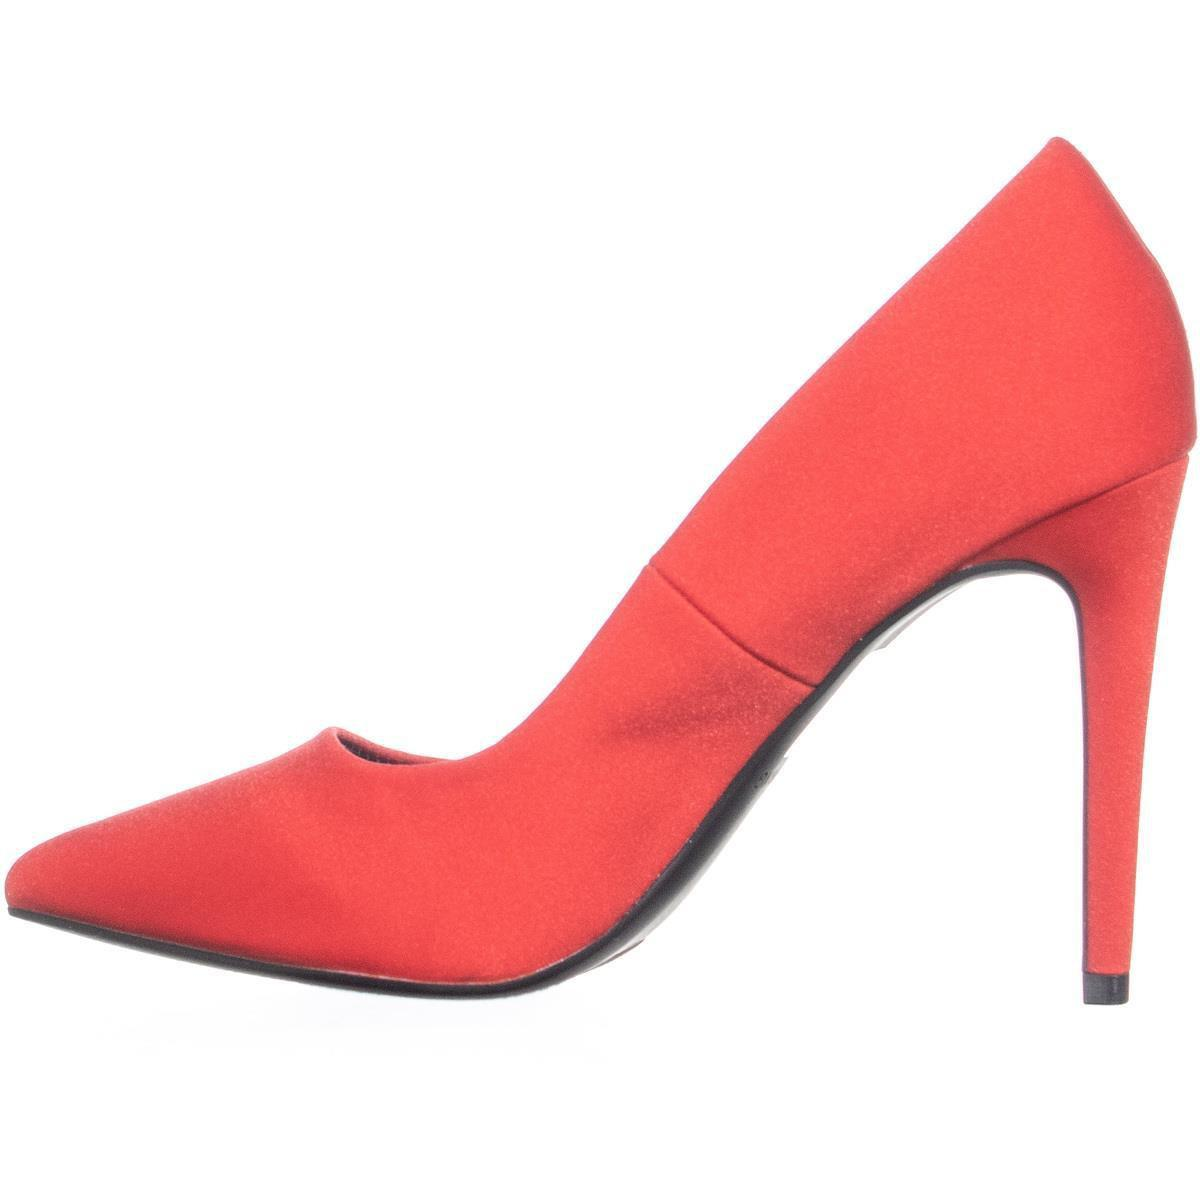 530978b23d30 Call It Spring Agrirewiel Pointed Toe Dress Pumps in Red - Lyst